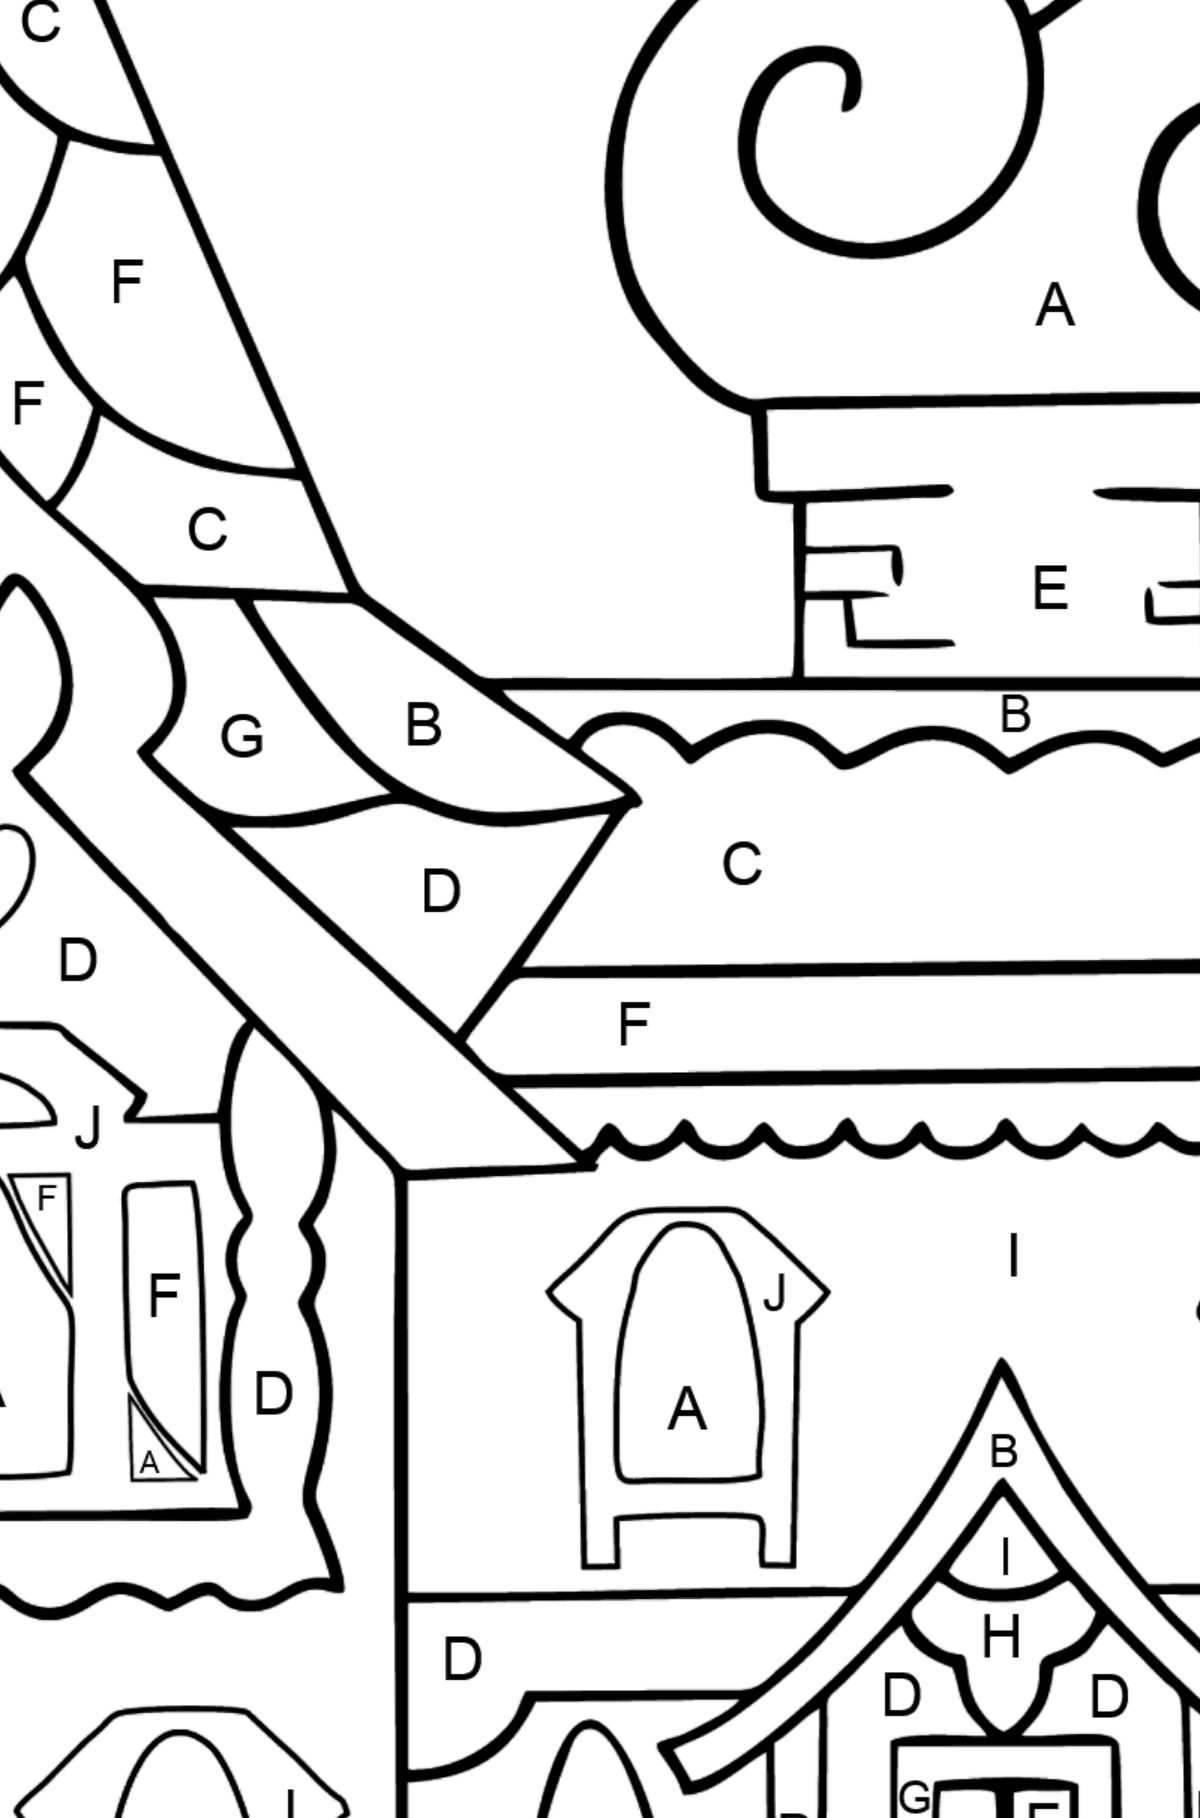 Complex Coloring Page - A House - A Kingdom of Storytellers - Coloring by Letters for Kids